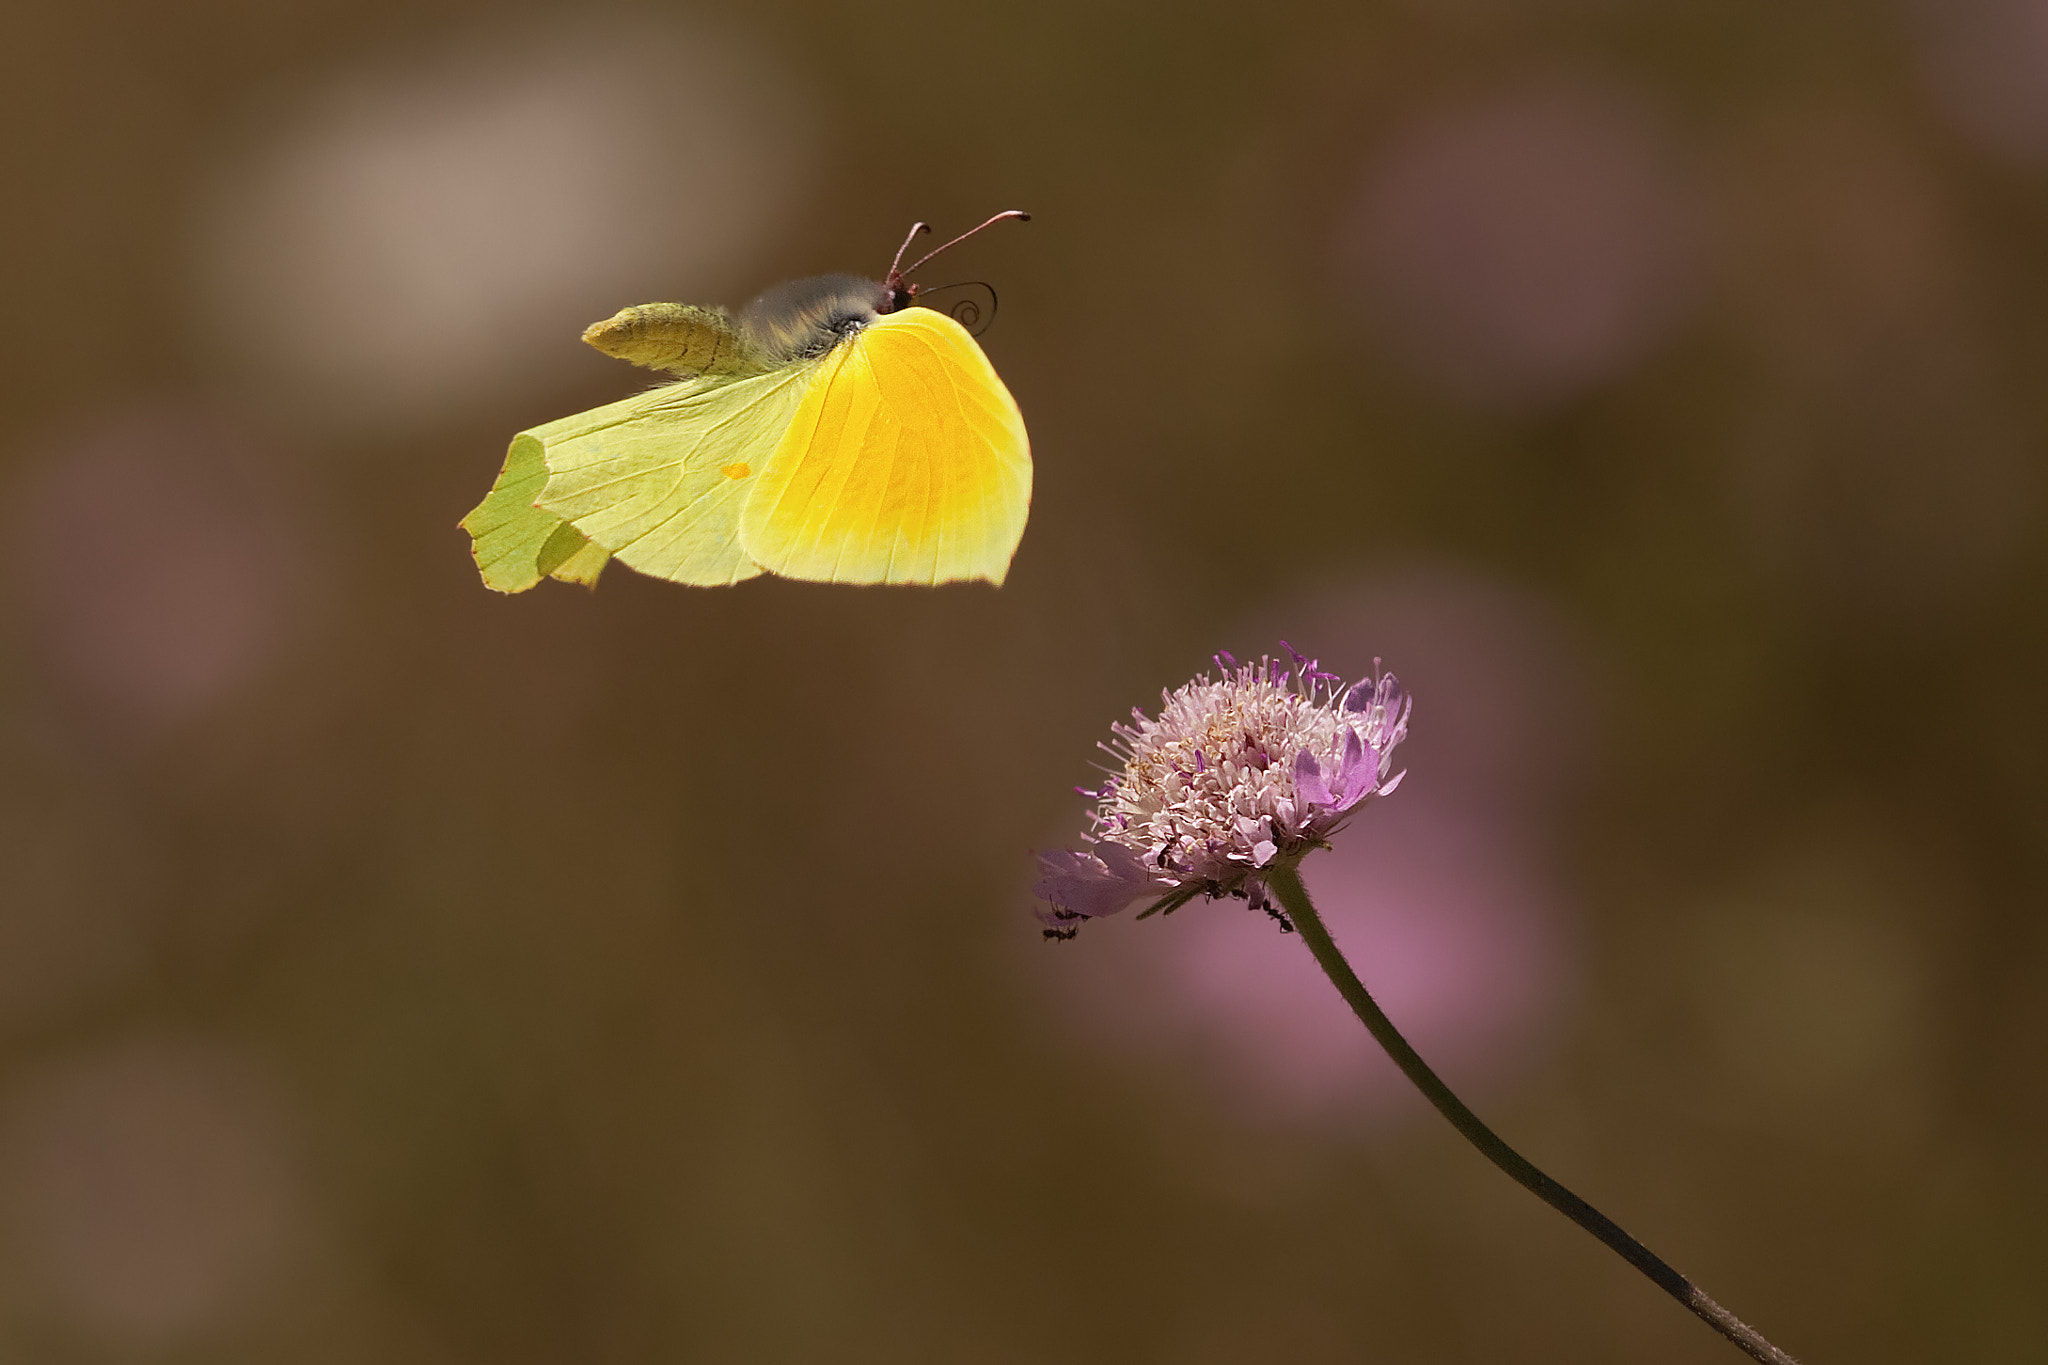 Photograph Cleopatra butterfly in flight by Christian Müller on 500px